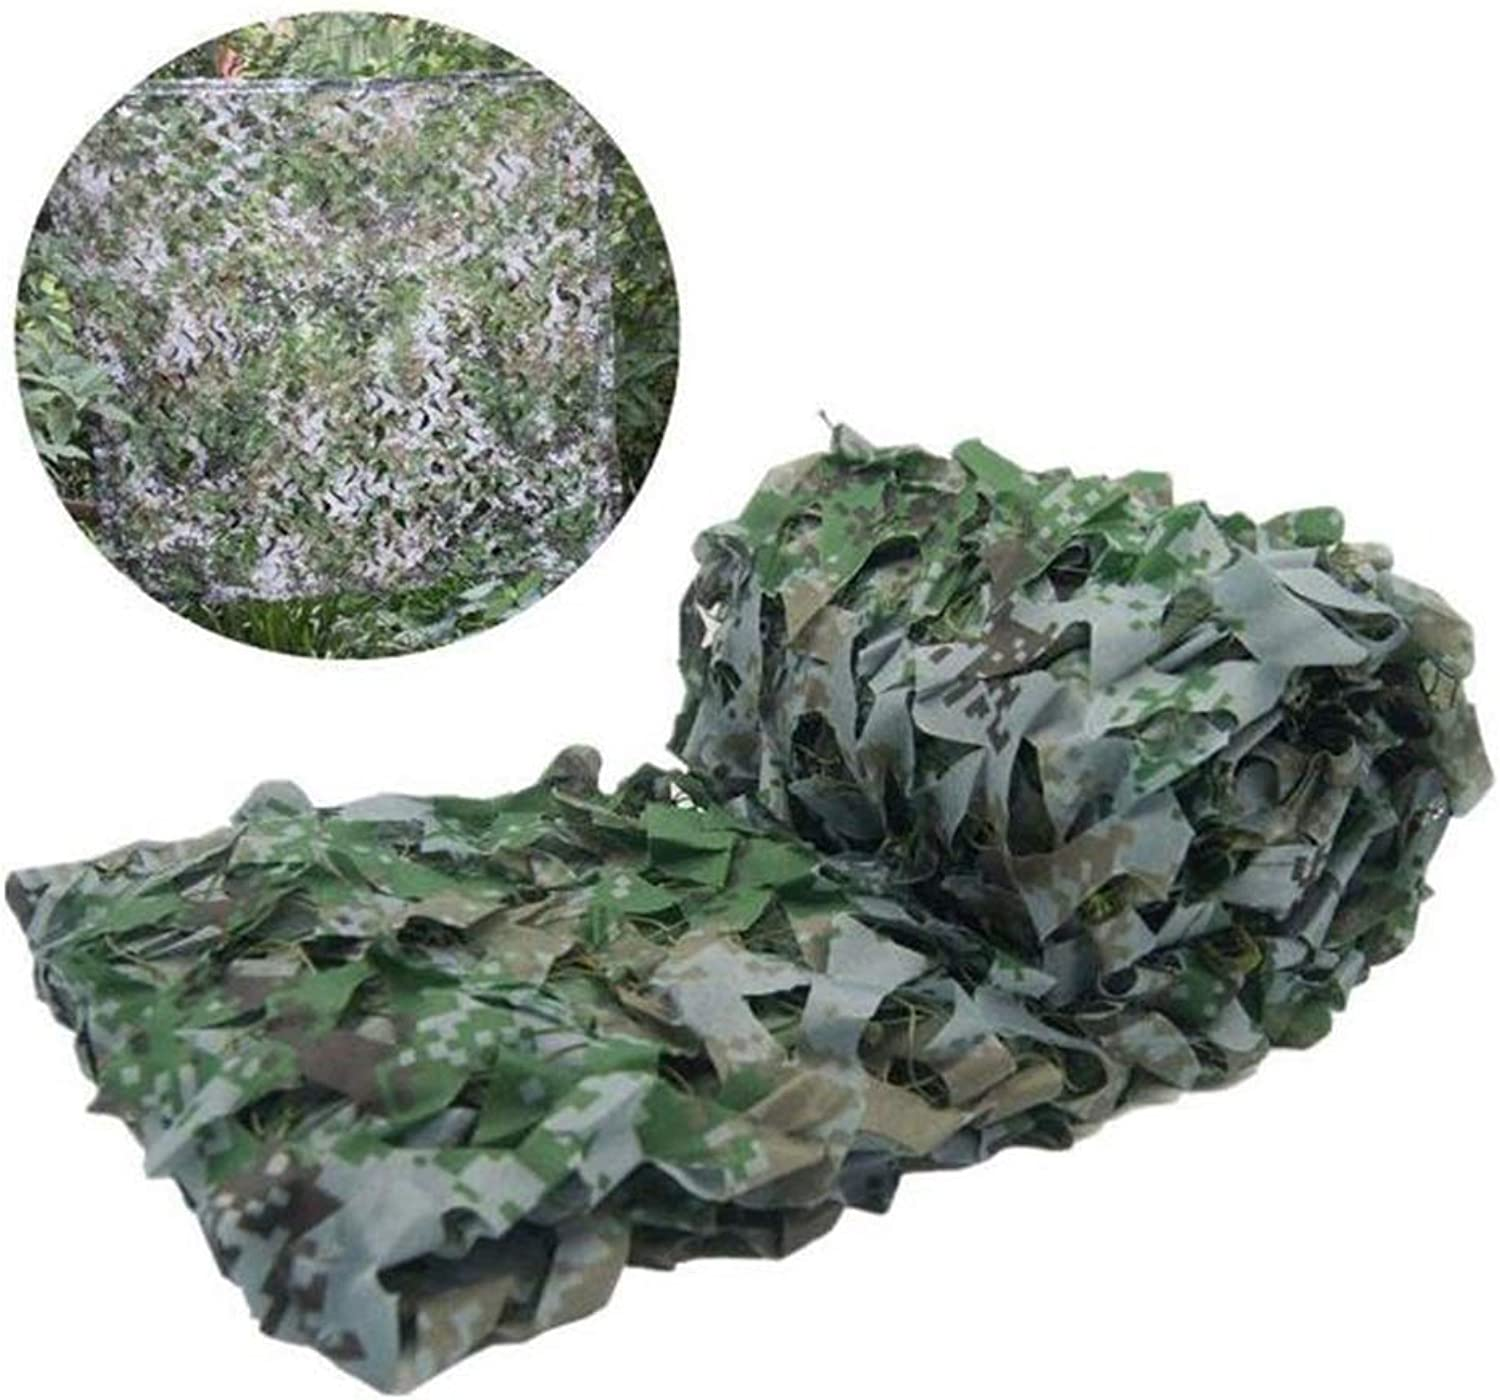 Outdoor Visor Camouflage Net Jungle Digital Camouflage Net Camping Shooting Camo Net 2x3m (Size   3x3m) (Size   3x6M)